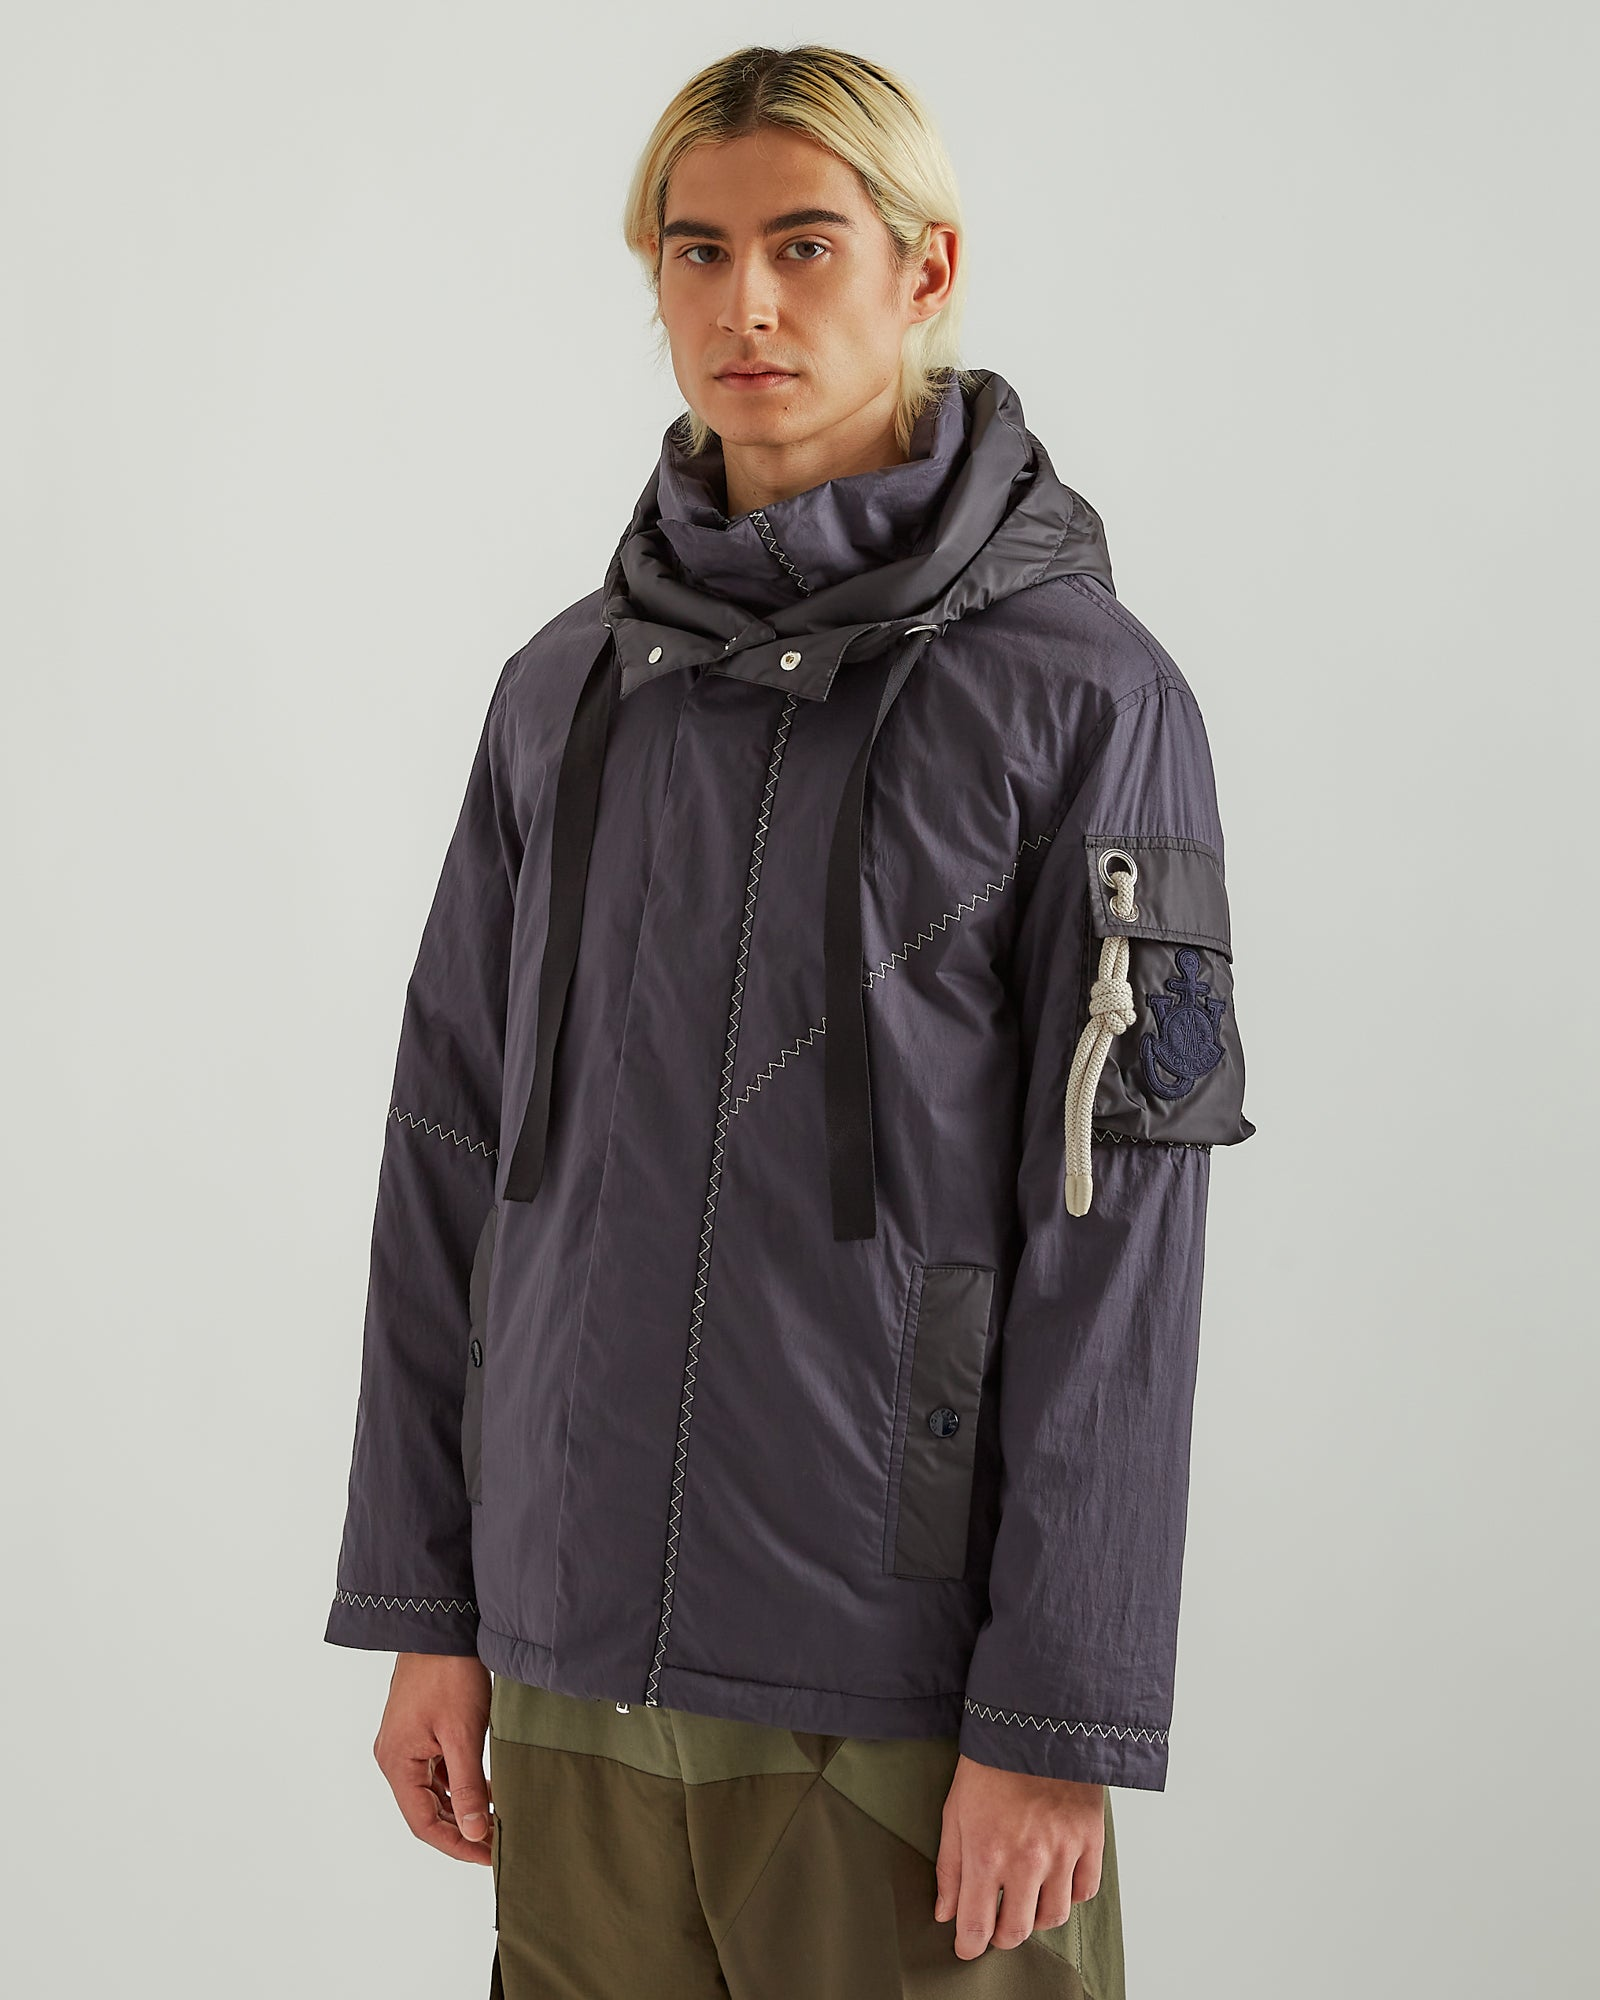 1Moncler JW Anderson Albatross Jacket in Navy